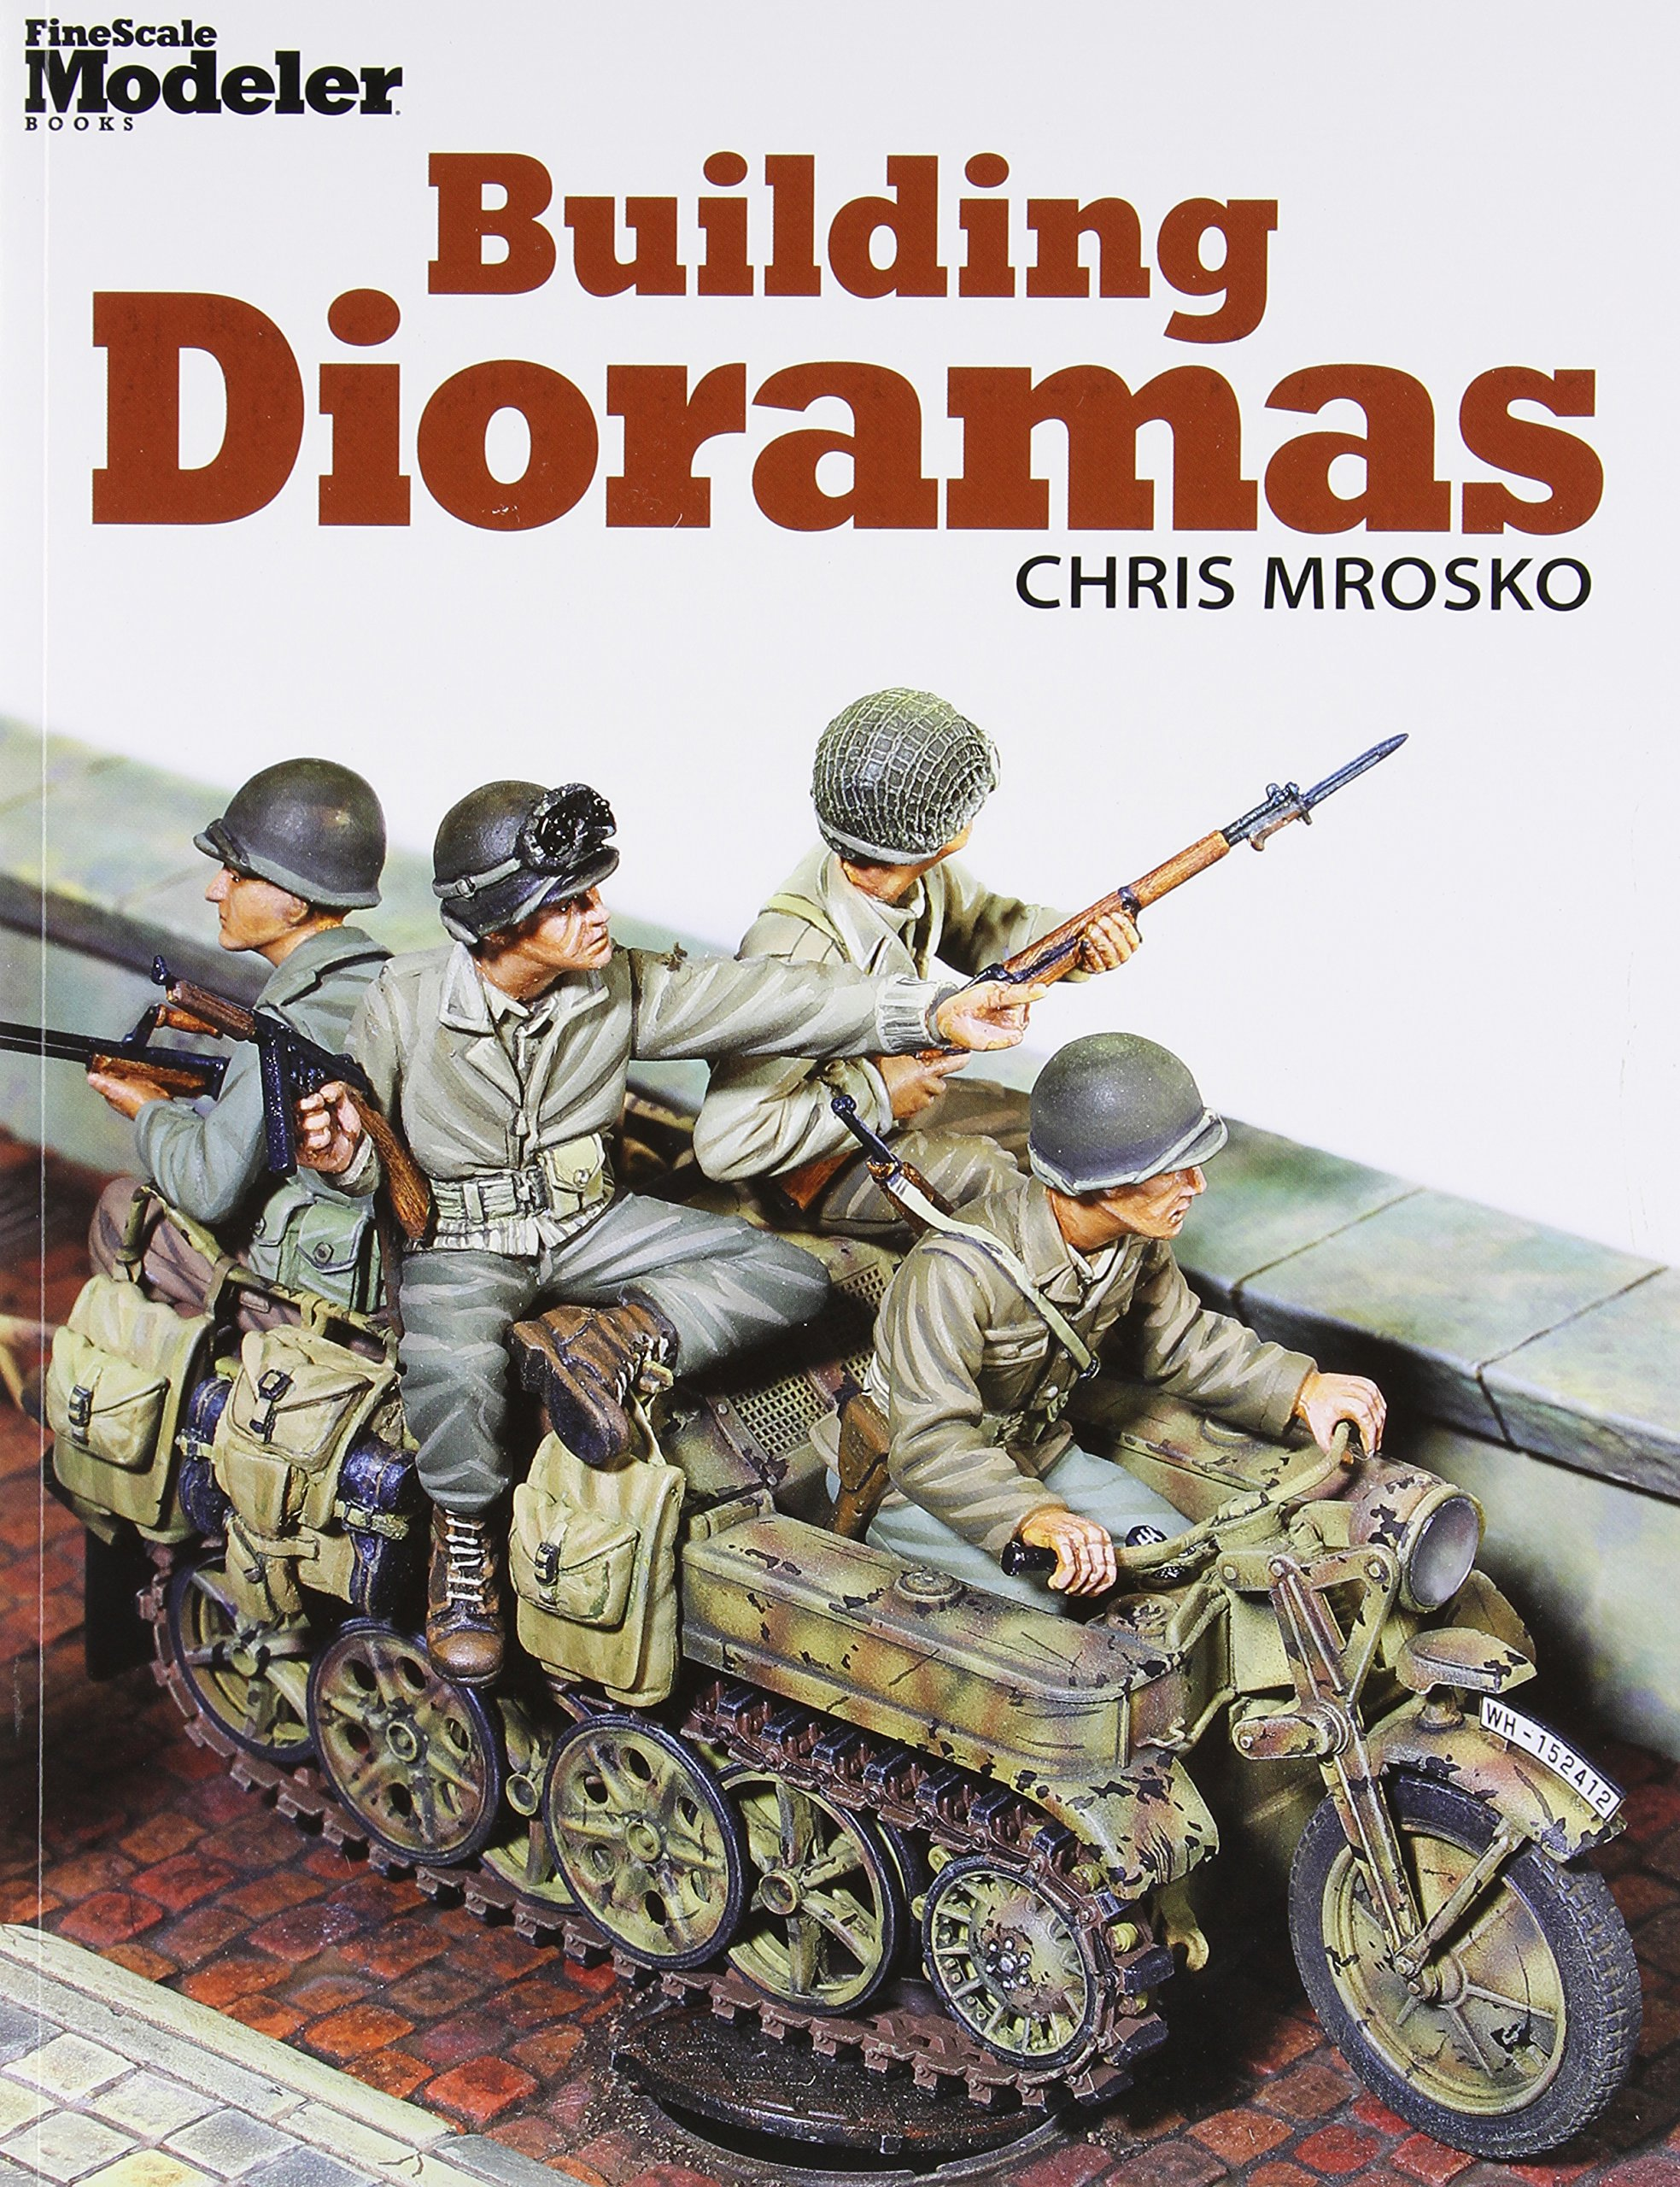 How to Build Dioramas